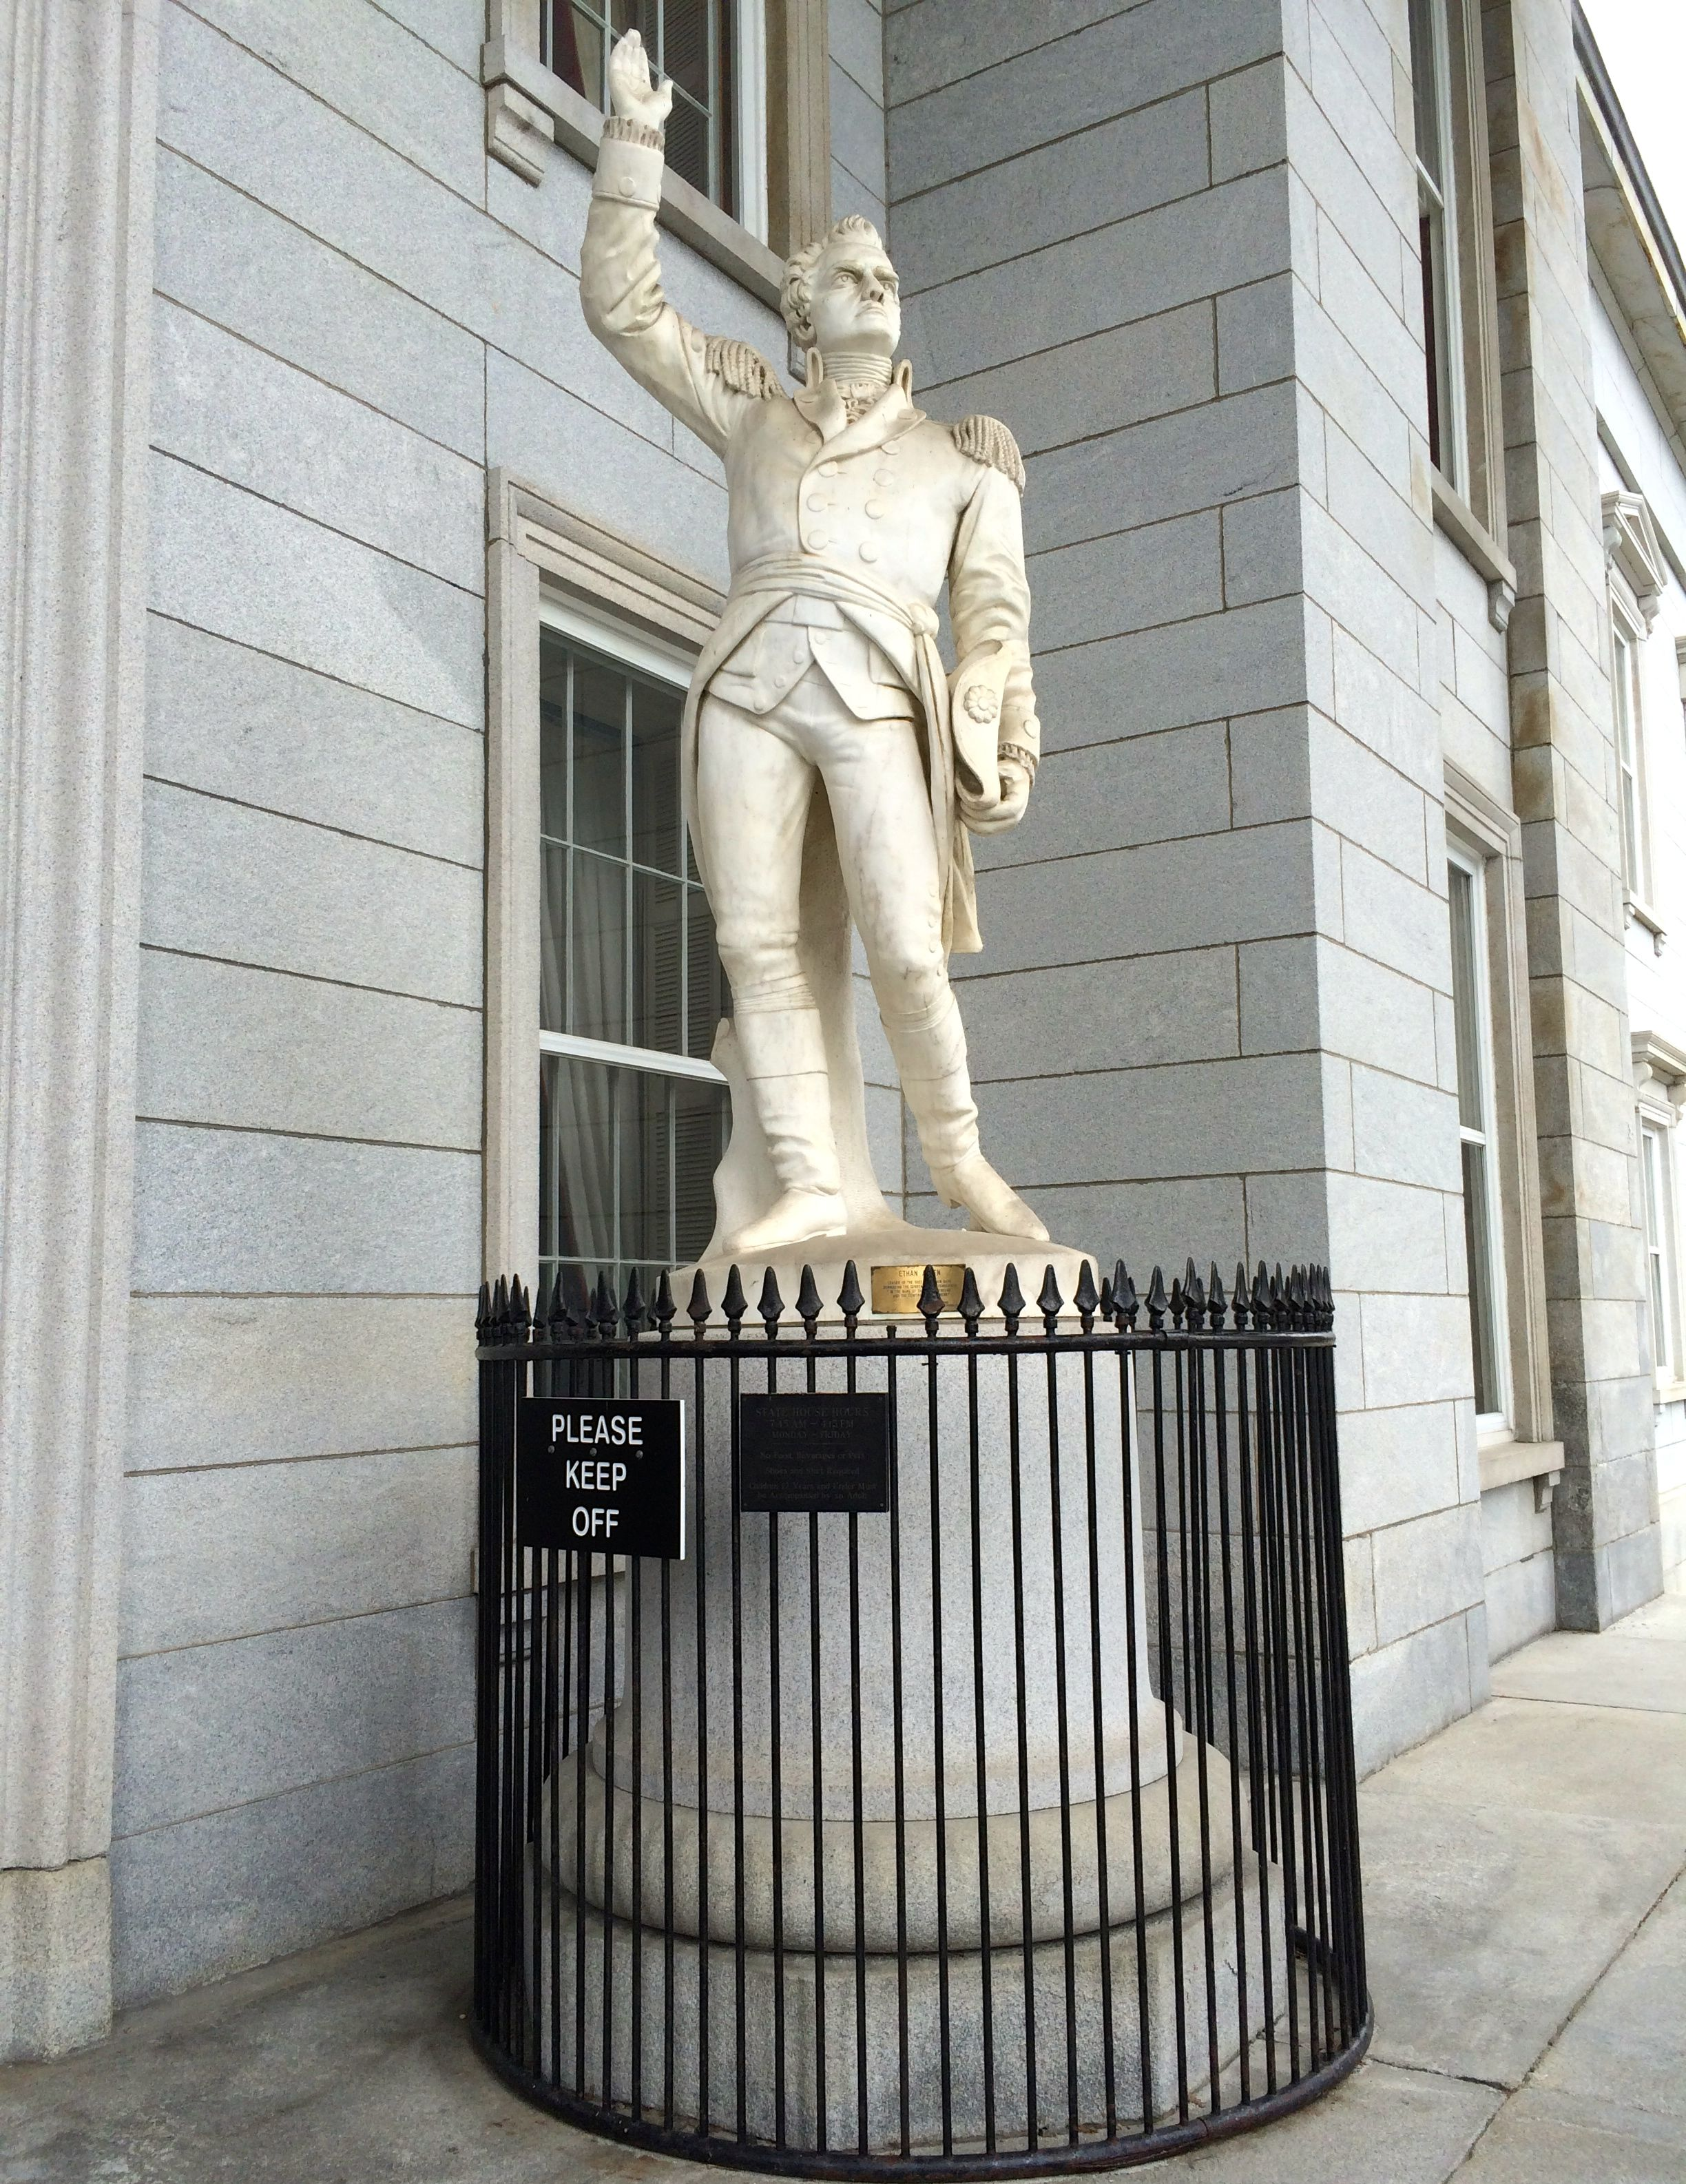 on the other side of the entrance is native son ethan allen patriot and real estate developer actually the guide told us that is was a fictionalized bennington ethan allen desk